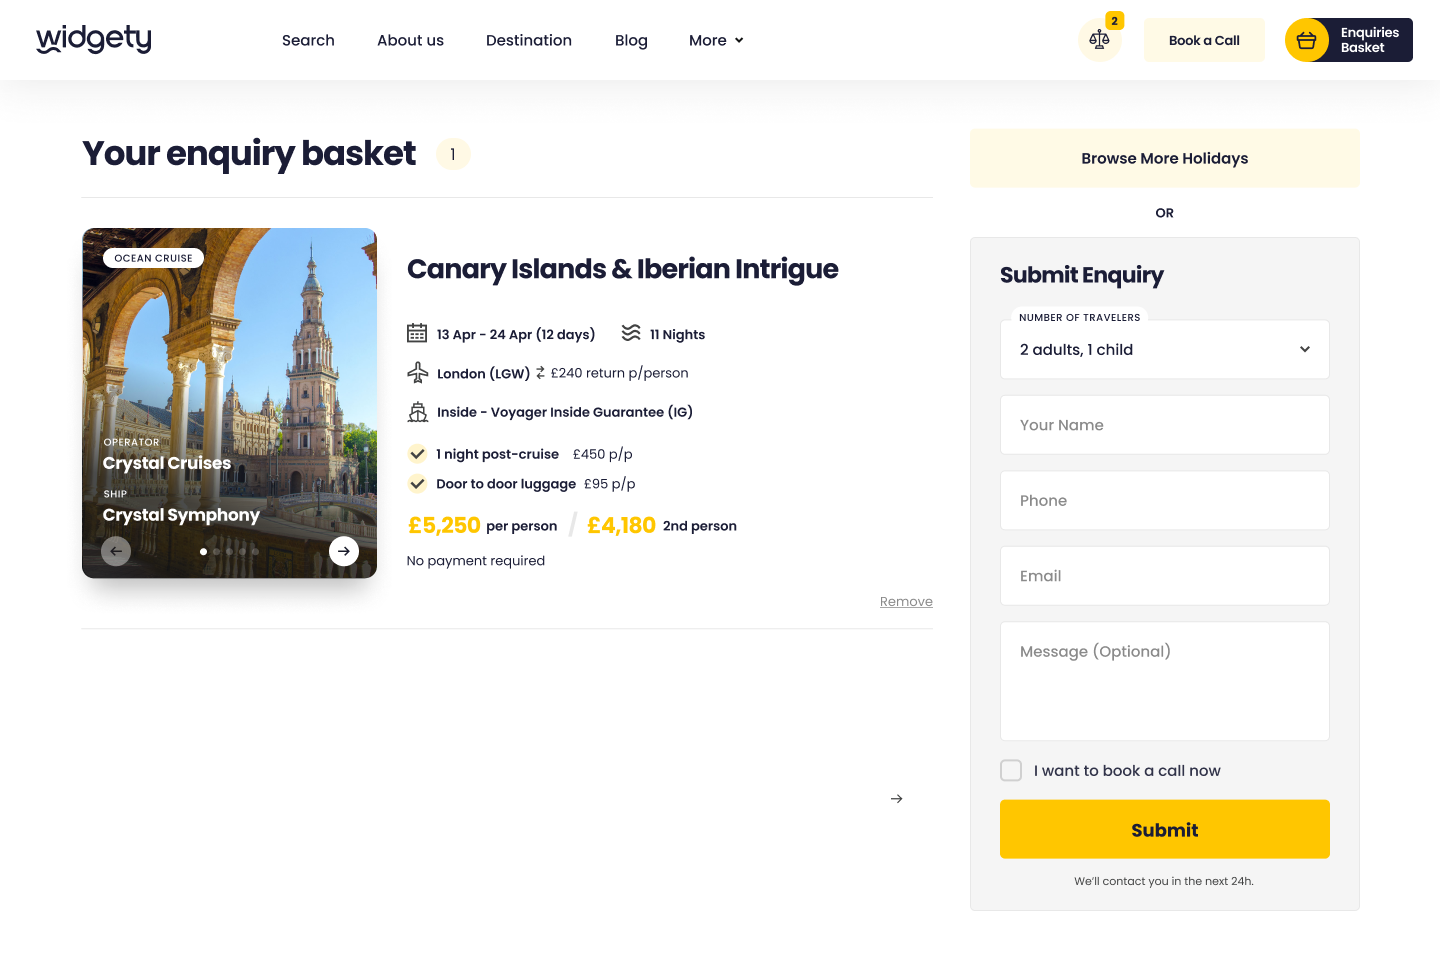 Enquiry basket on Widgety Holiday Search showing Canary Islands & Iberian Intrigue